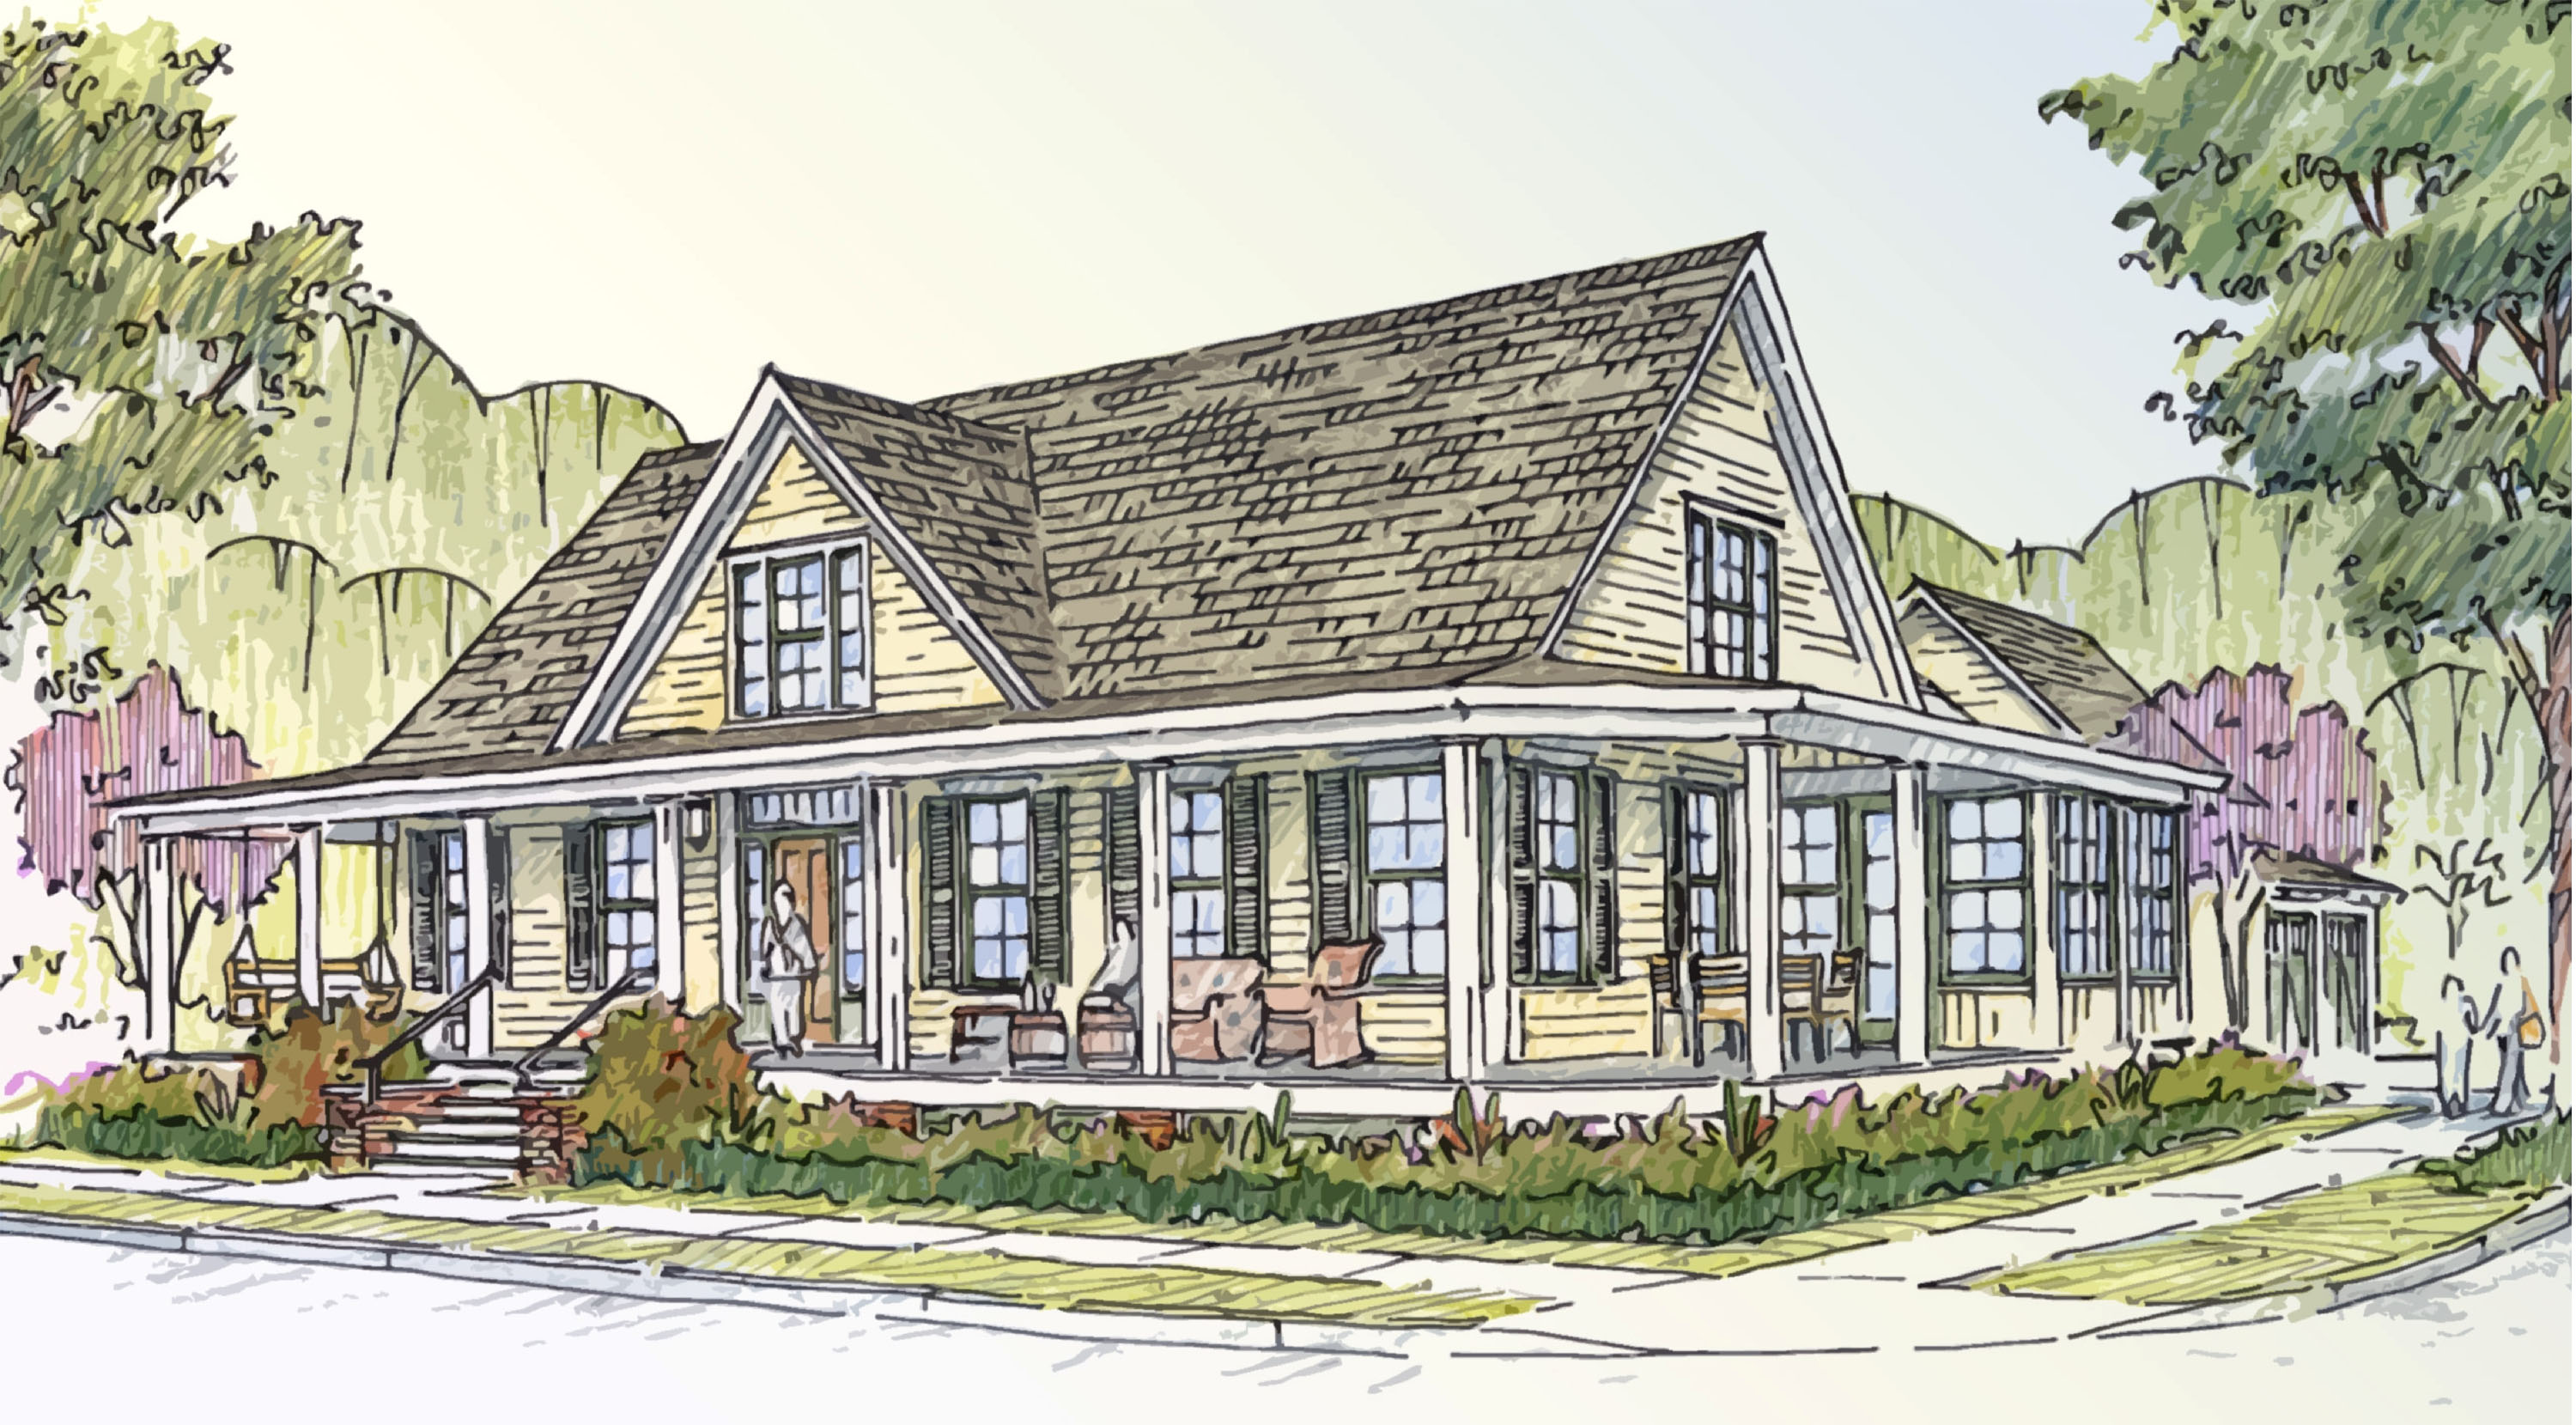 Southern Living Idea House 2012 Our Blog: southern farmhouse plans